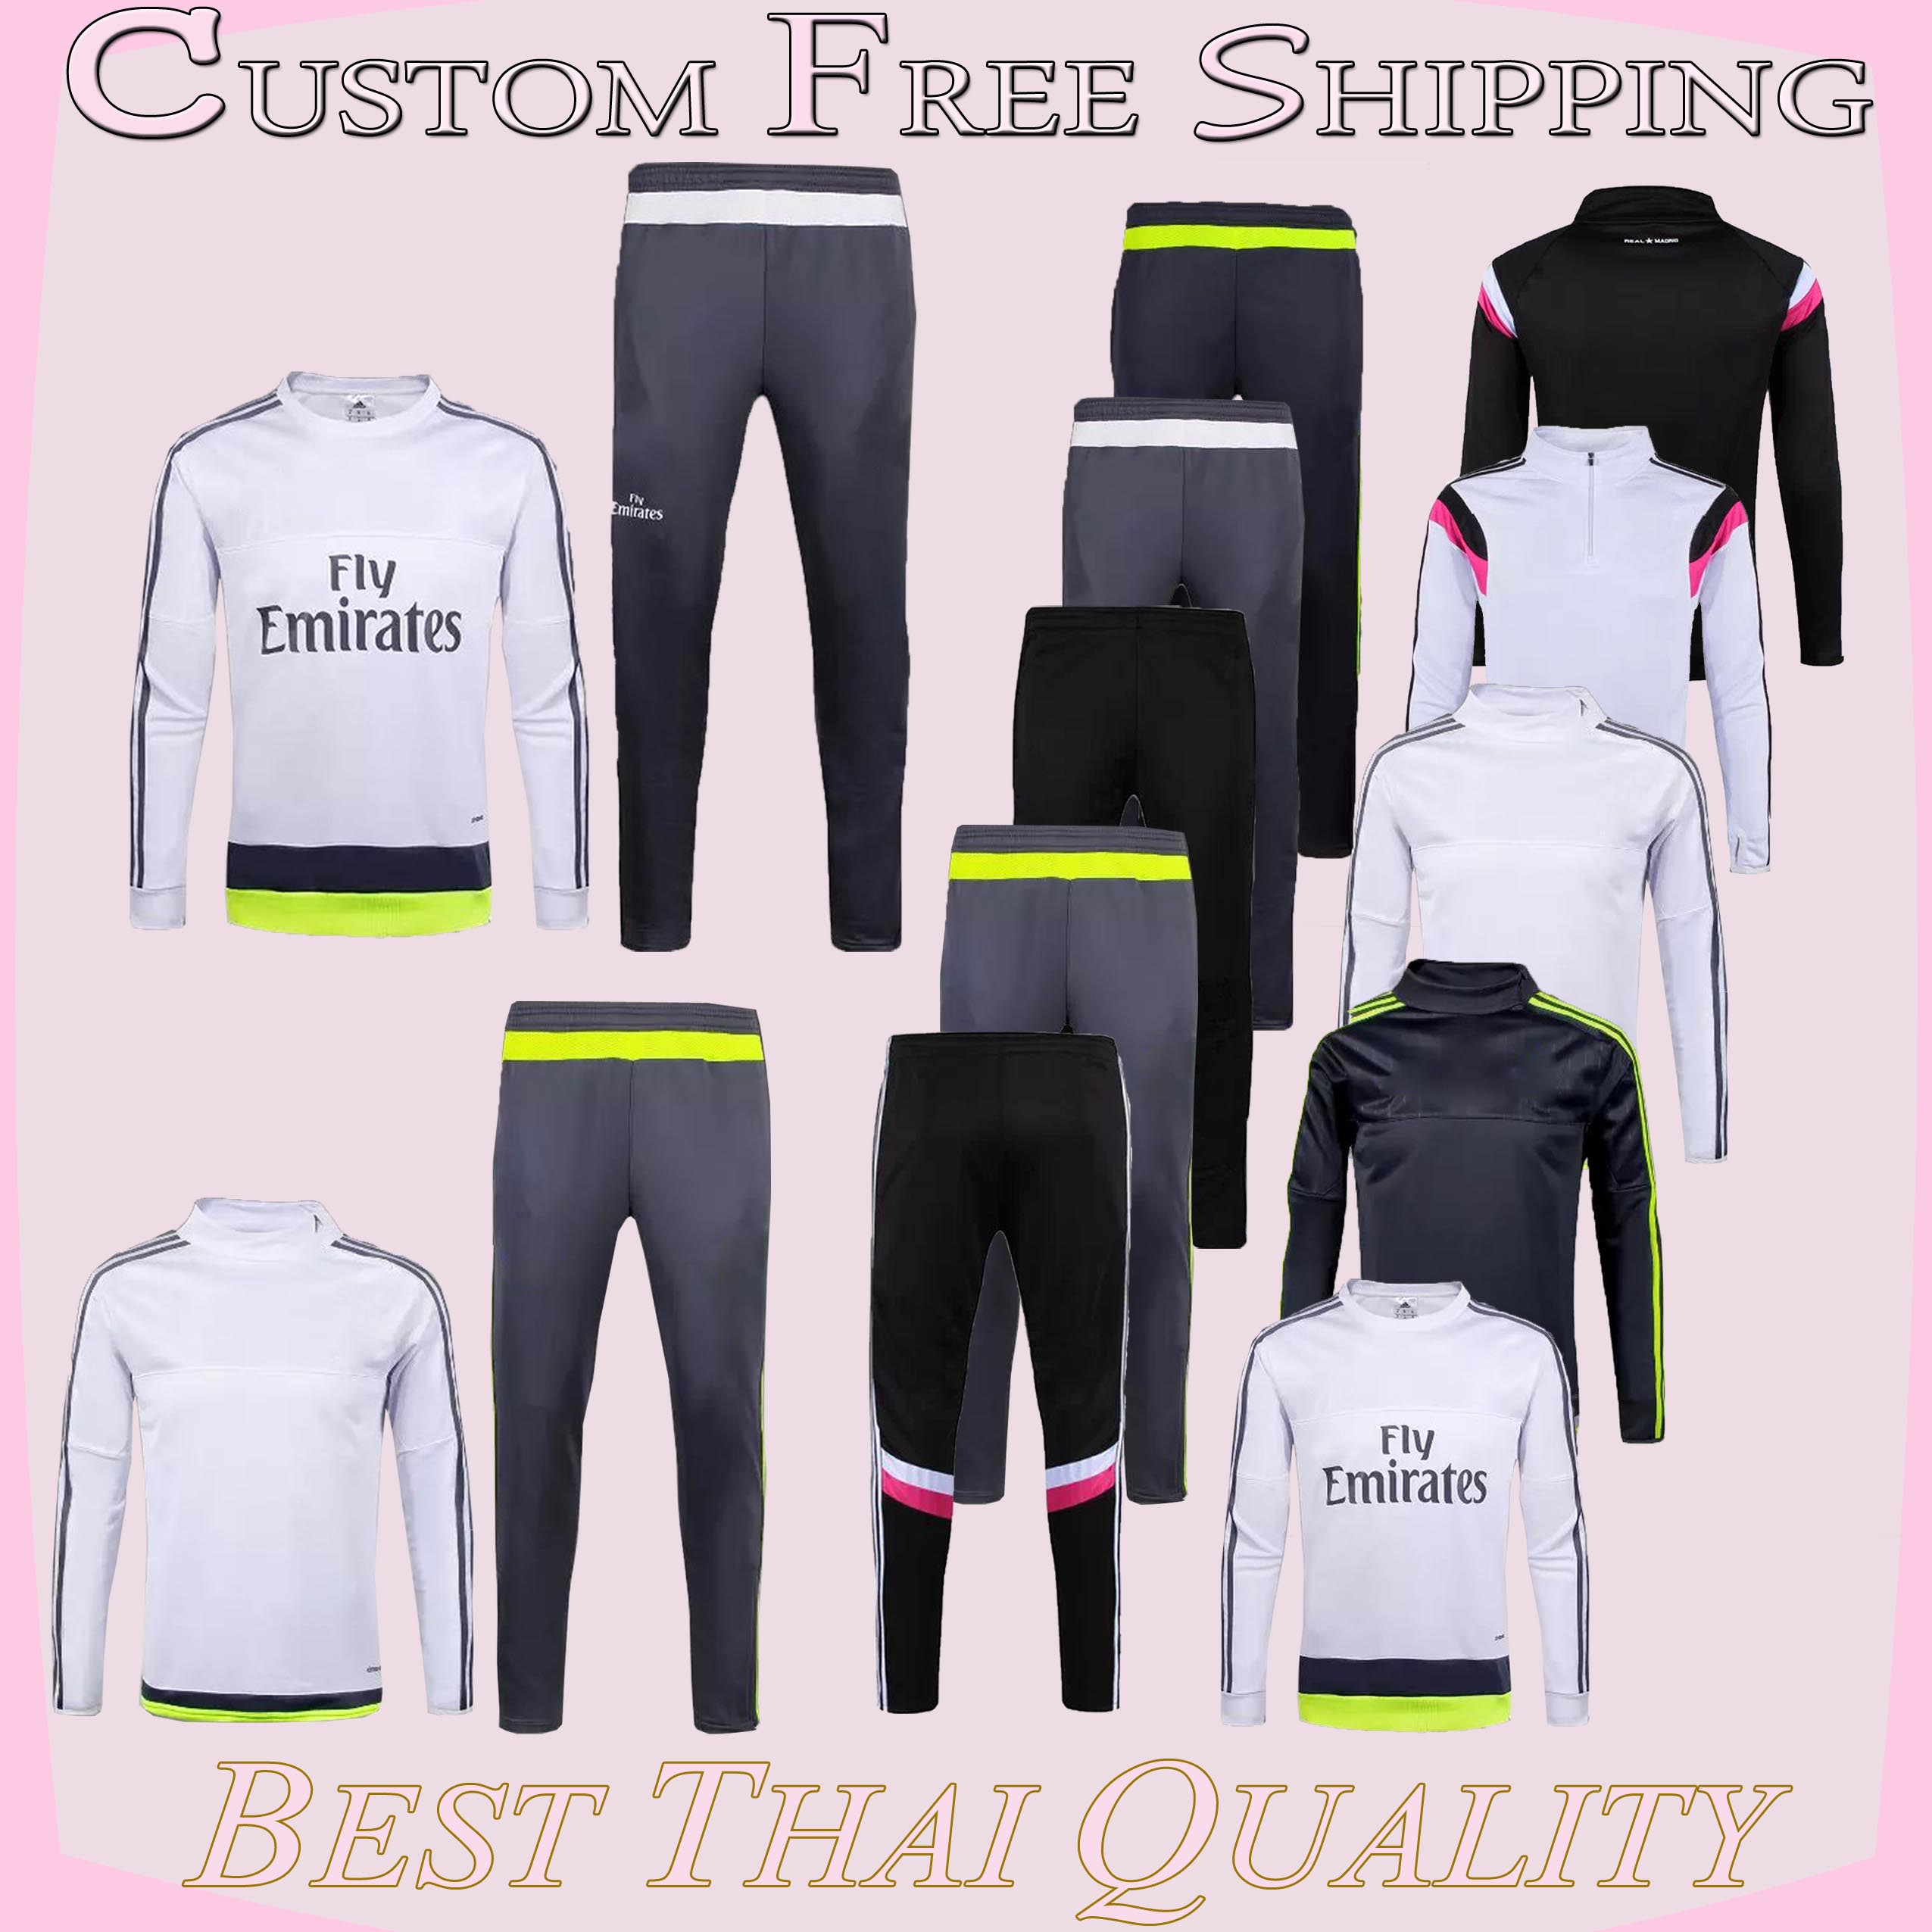 HOT 2015/2016 survetement City football training suit soccer trainings kits AC MILAN soccer tracksuits Man chandal jerseys(China (Mainland))